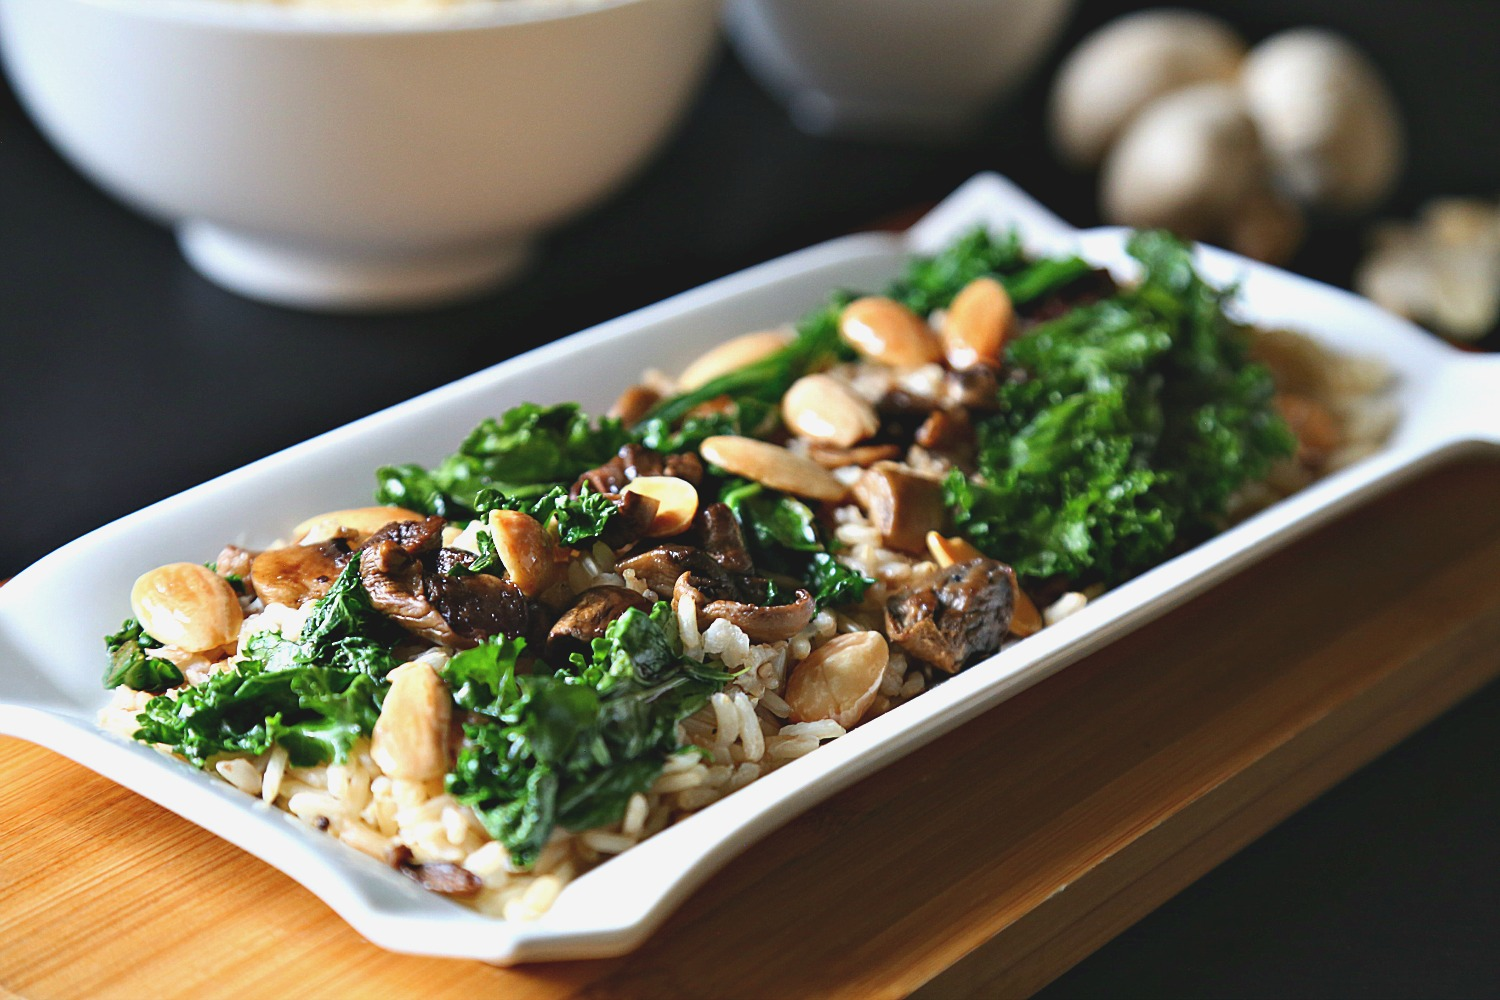 Brown Rice with Sauteed Mushrooms and Kale